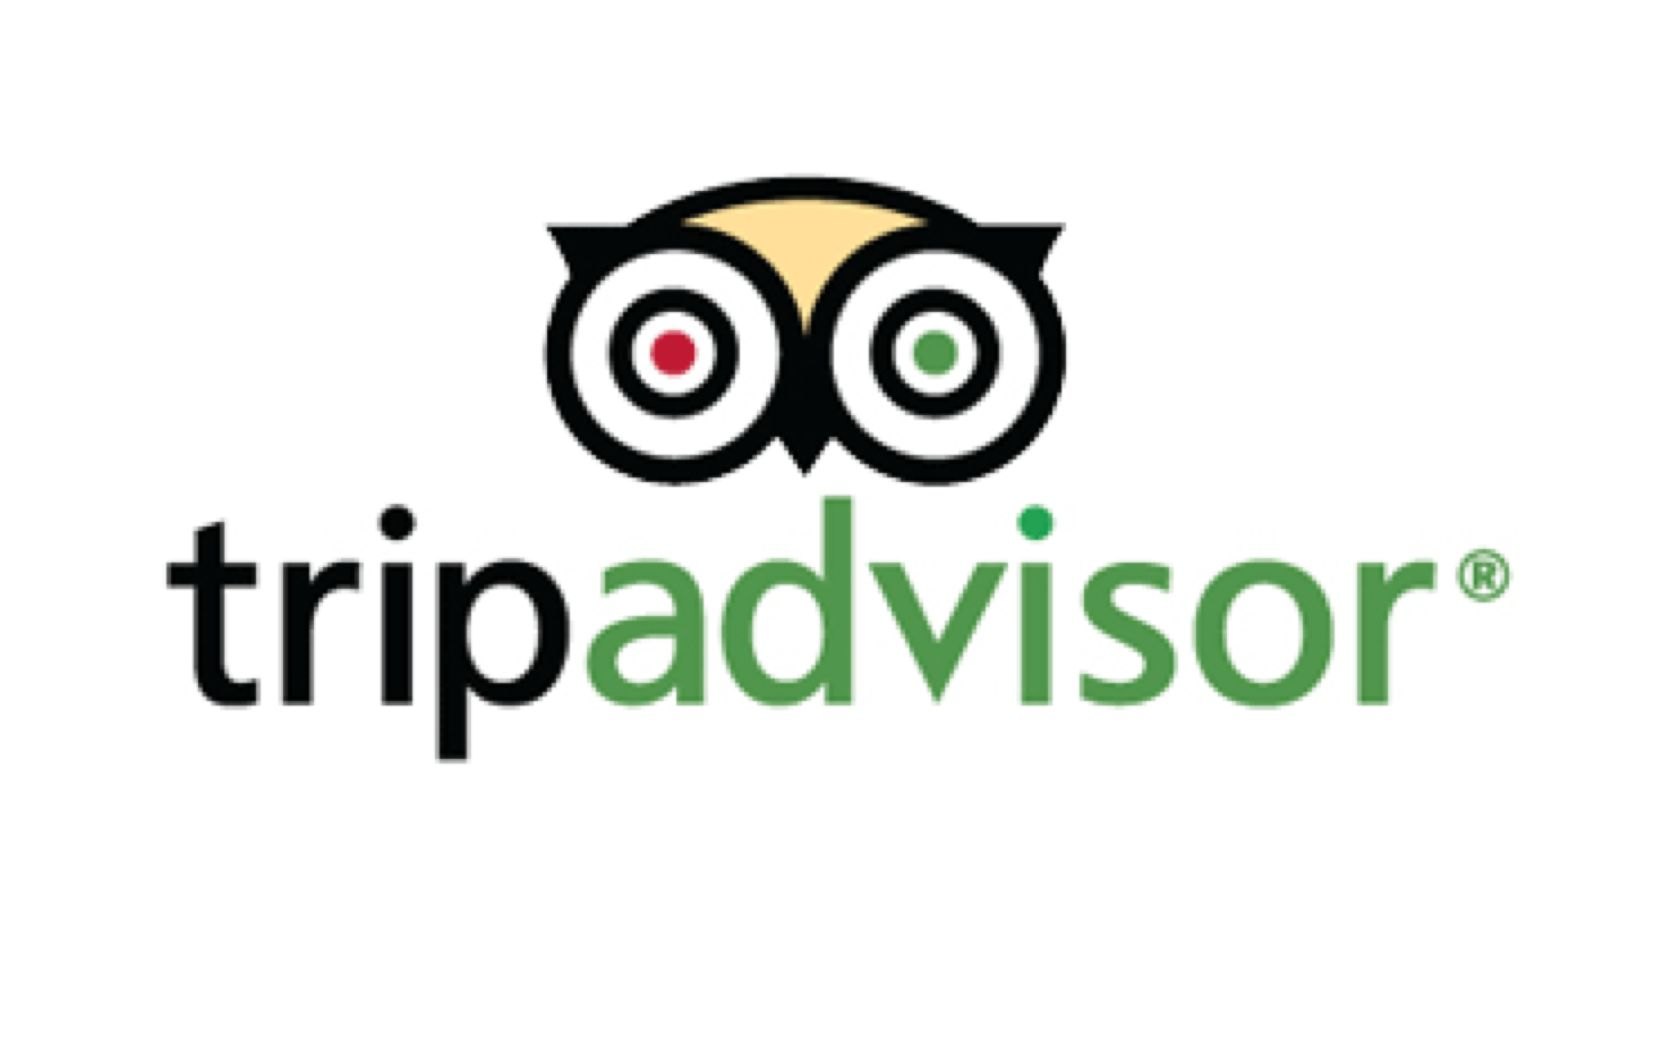 tripadvisor-logo-vector-download.jpg